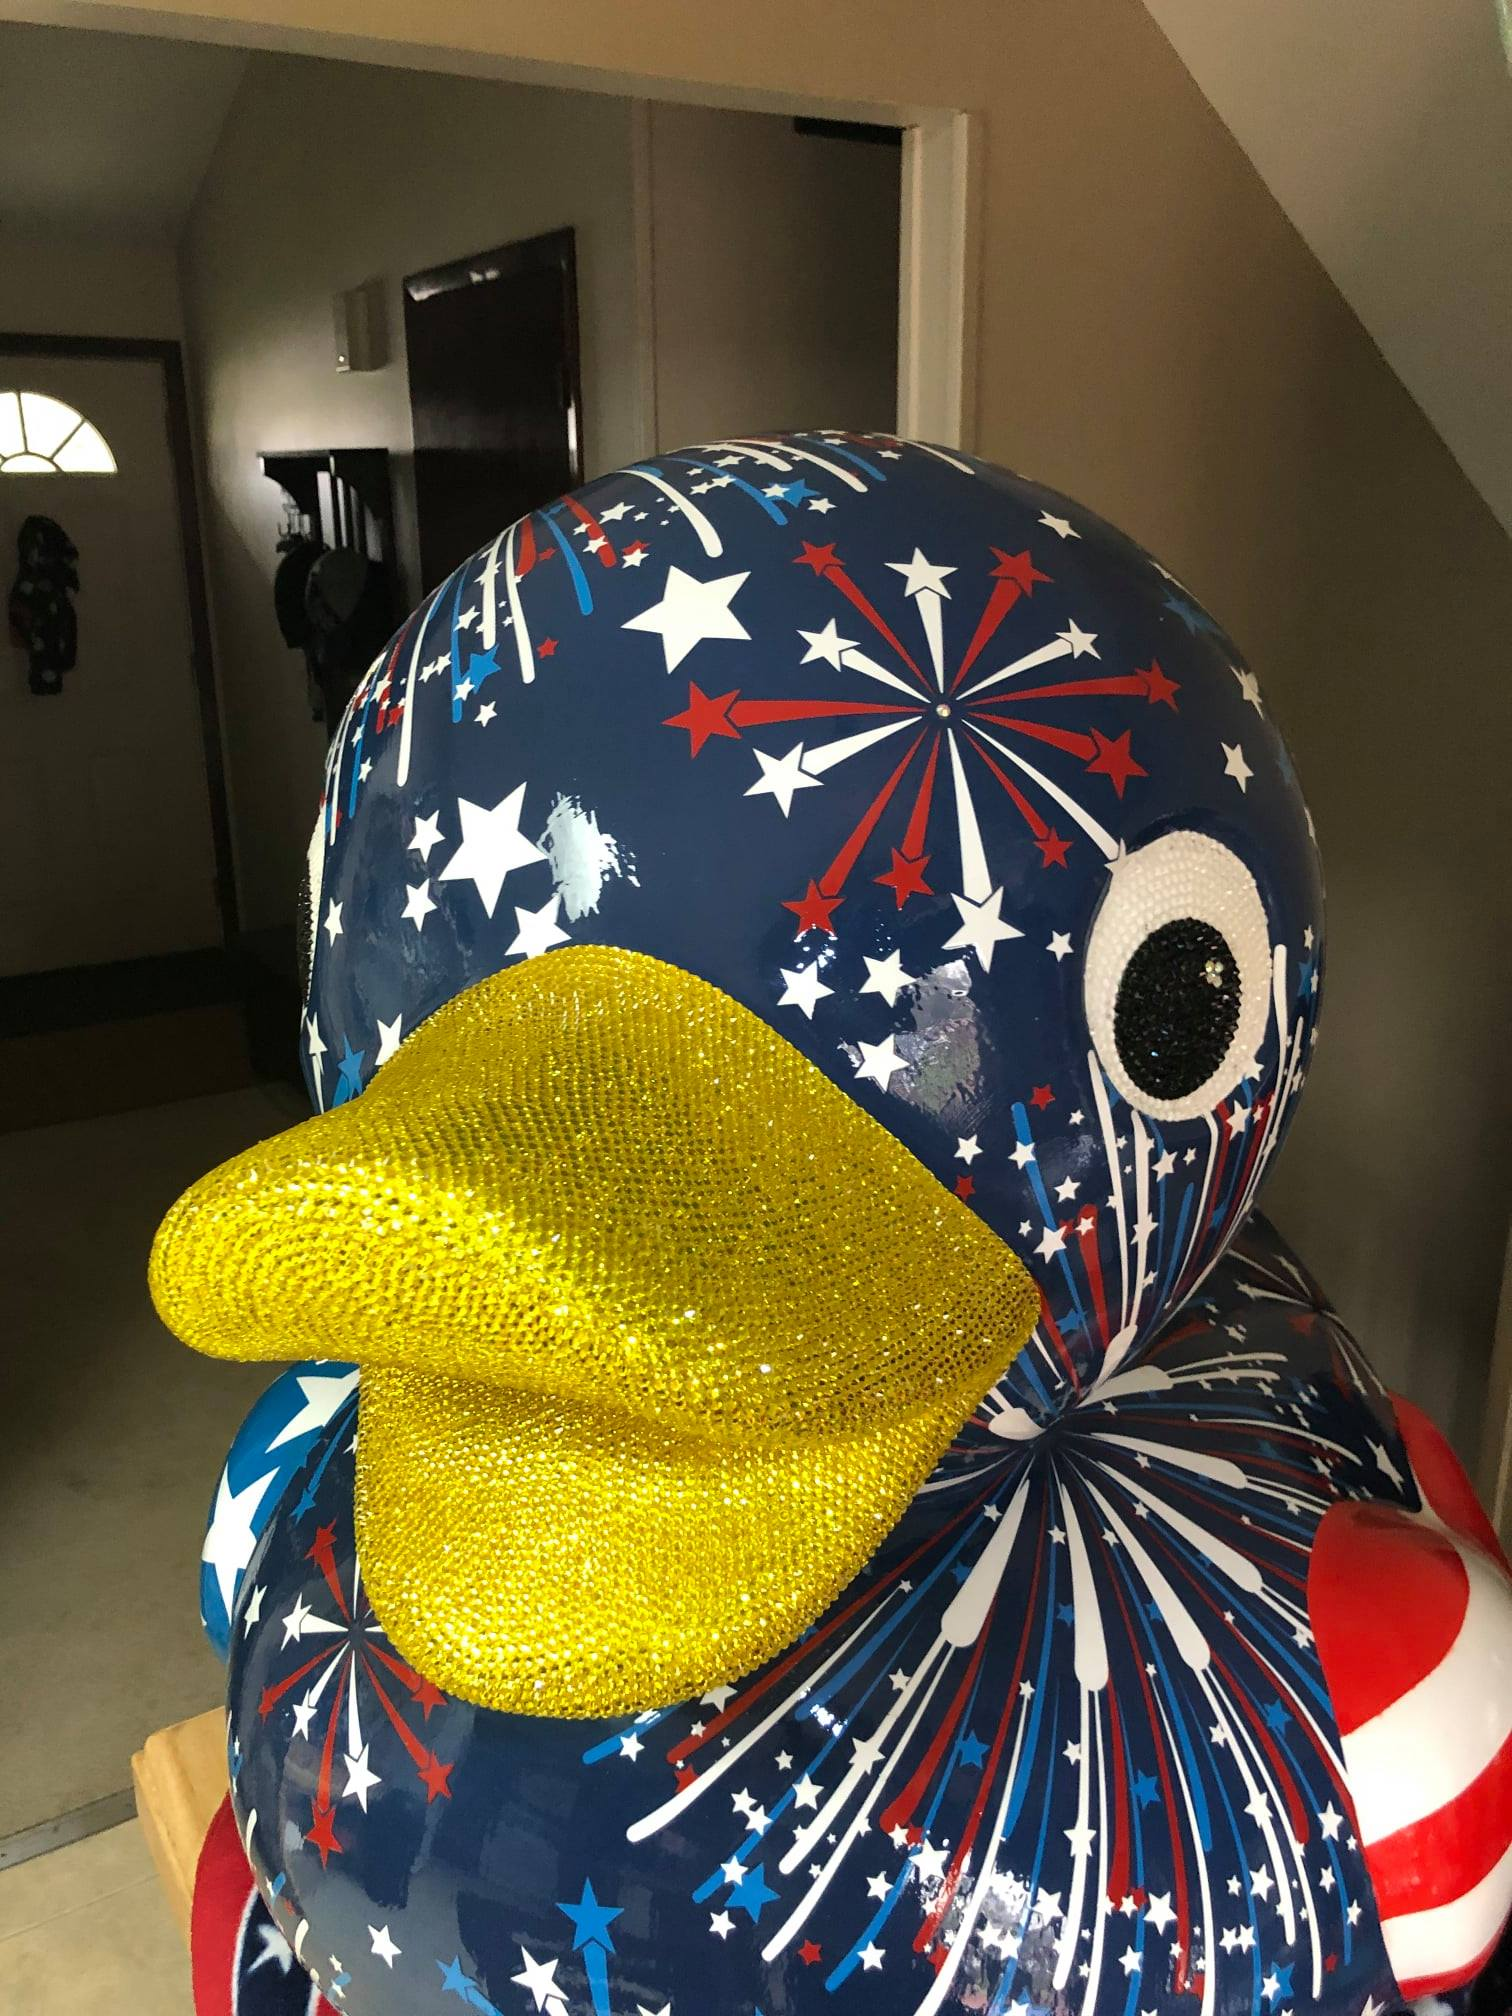 3 foot tall duck painted